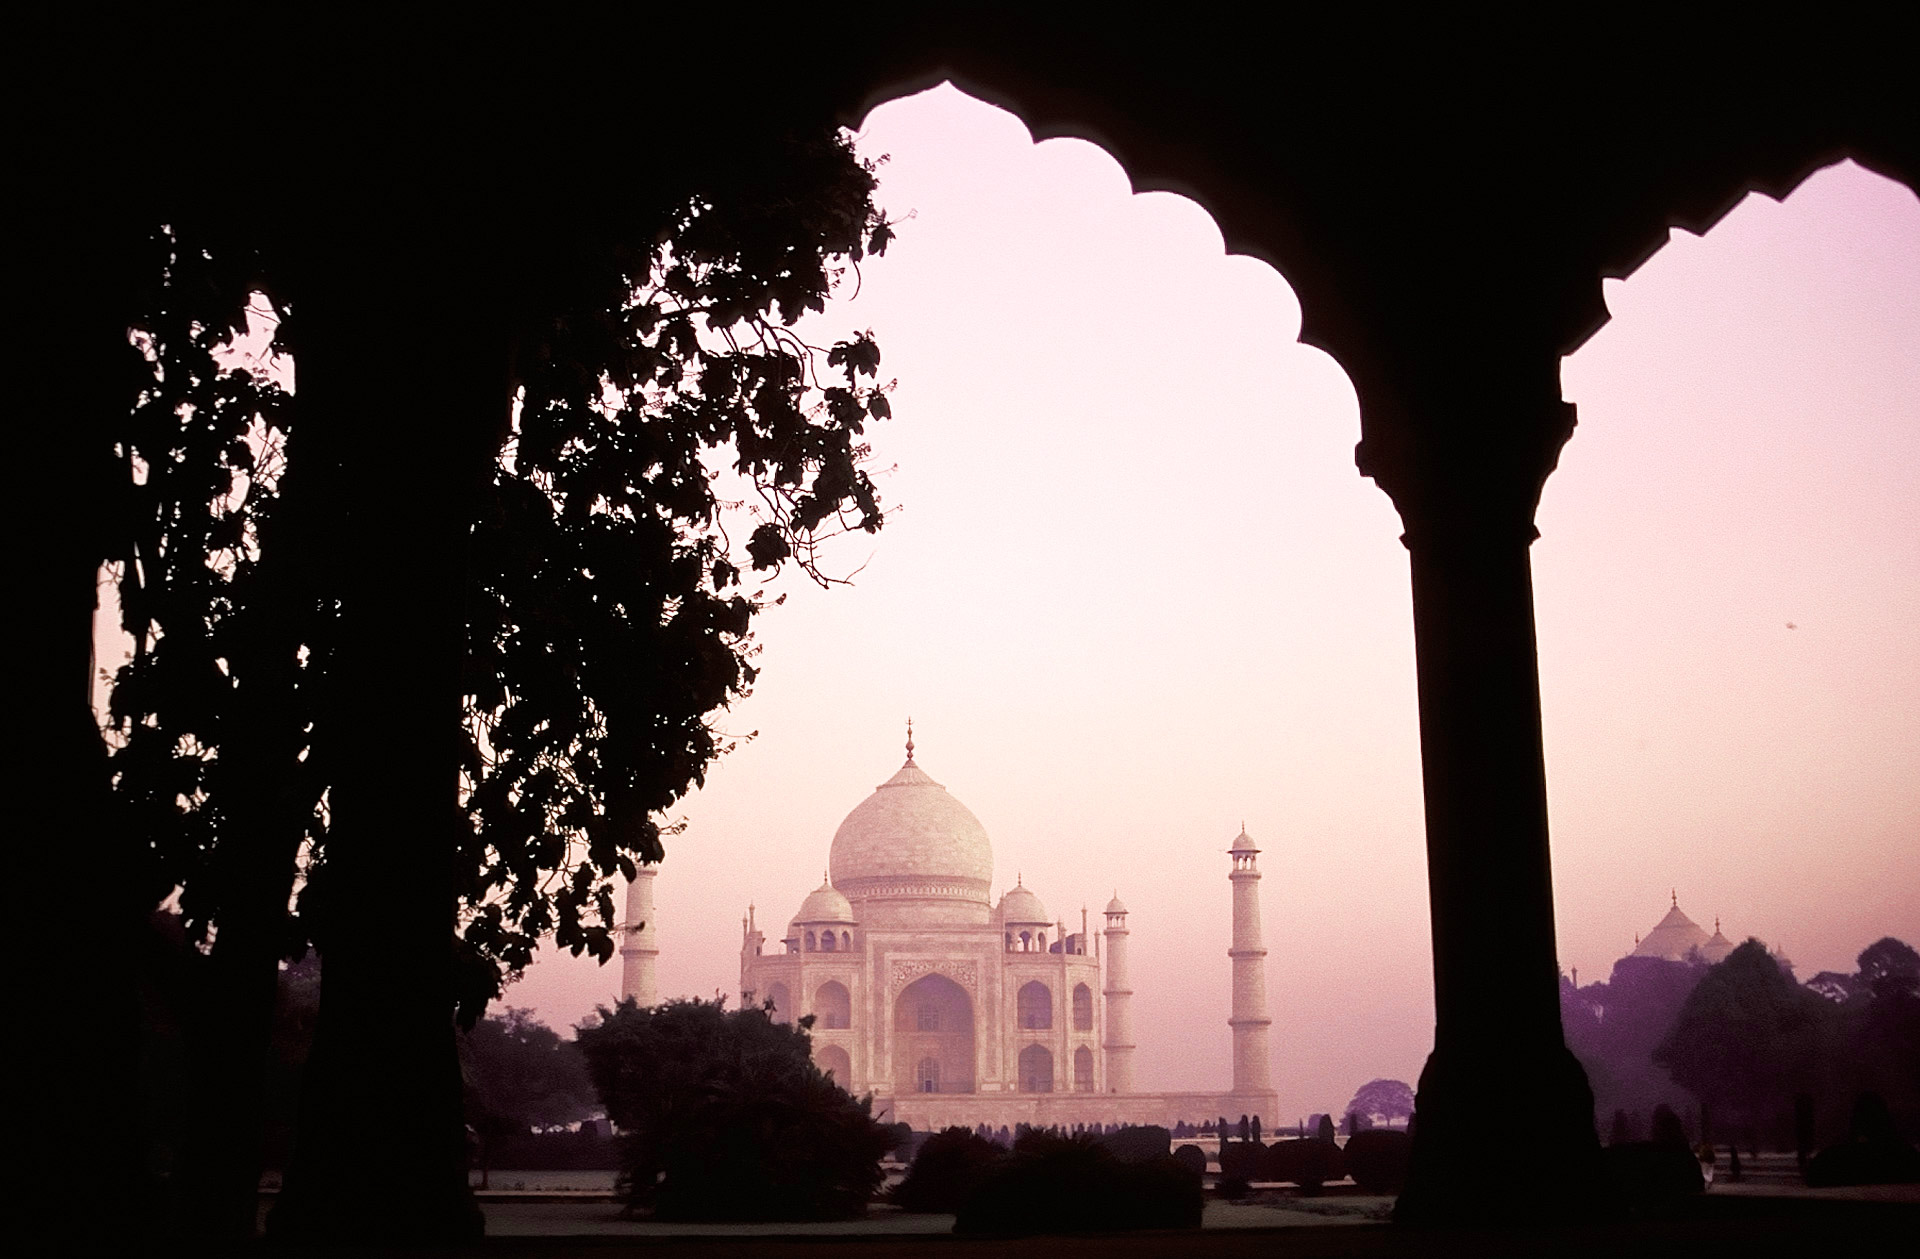 Taj Mahal, as seen from the archways at the Entrance Gate, Agra, Uttar Pradesh, India